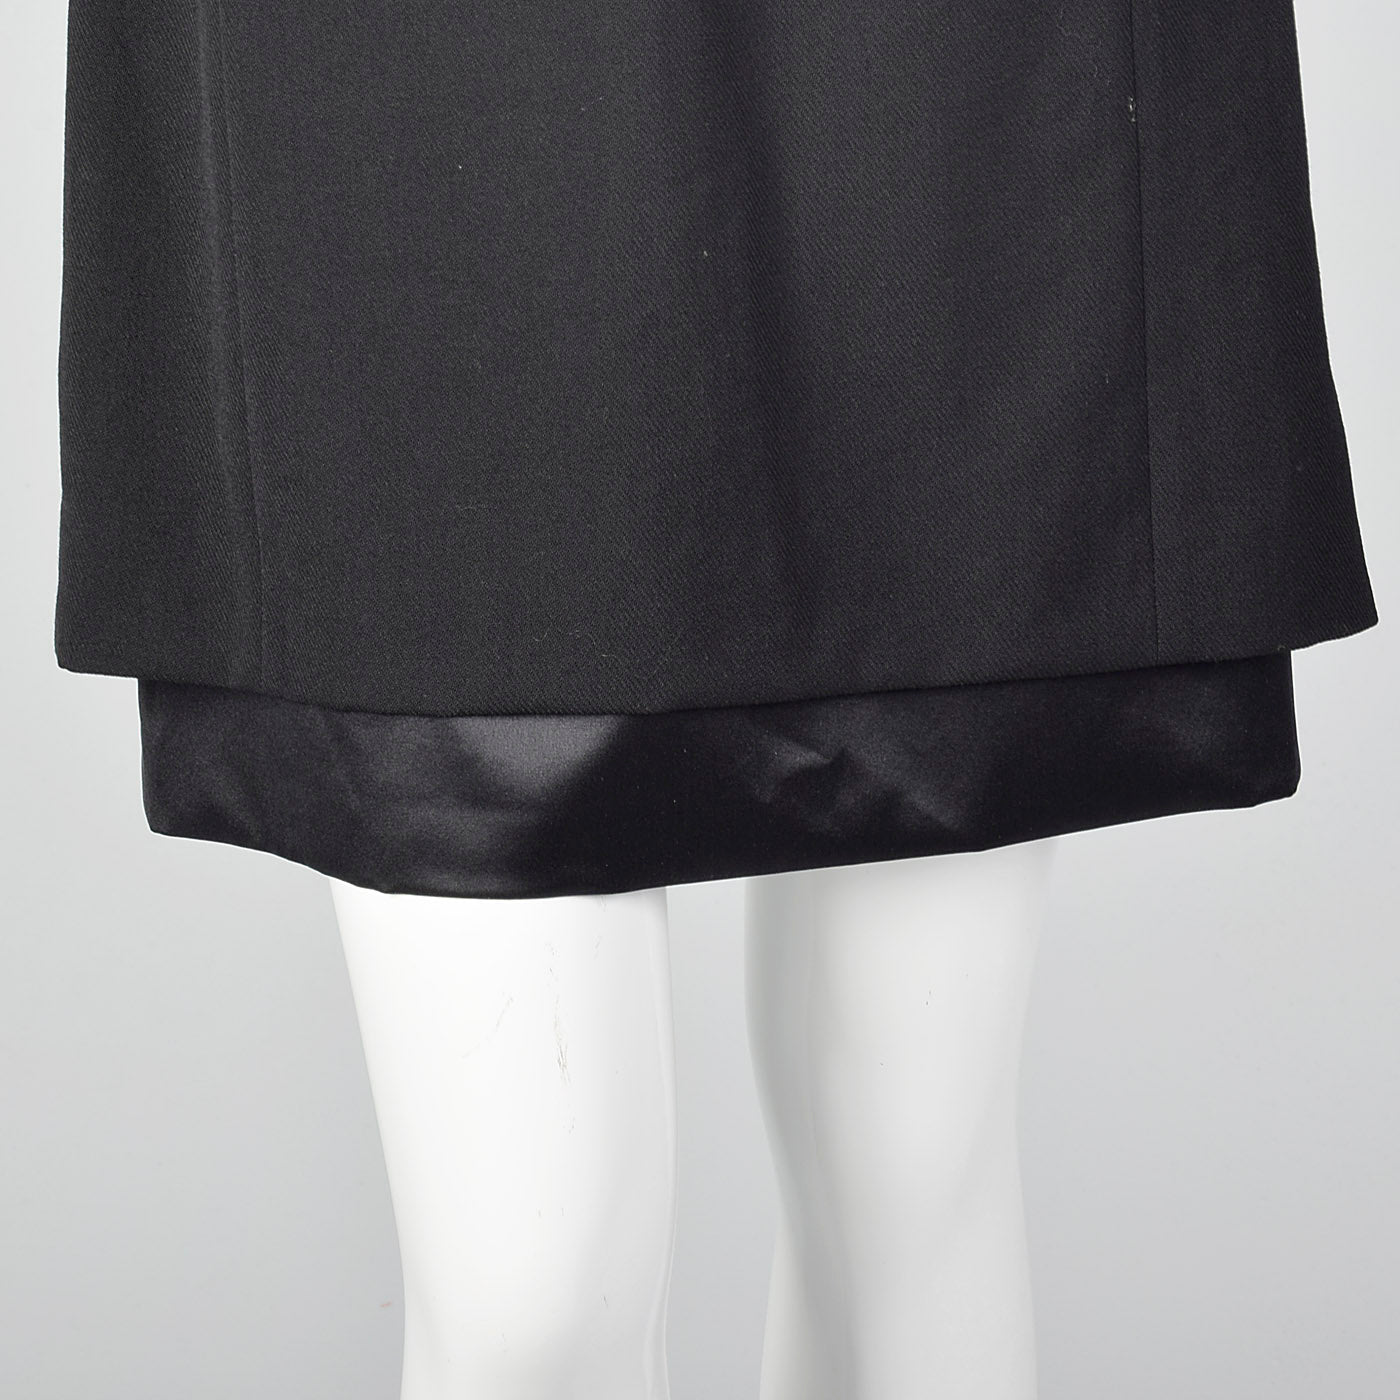 1990s Deadstock Louis Feraud Black Dress